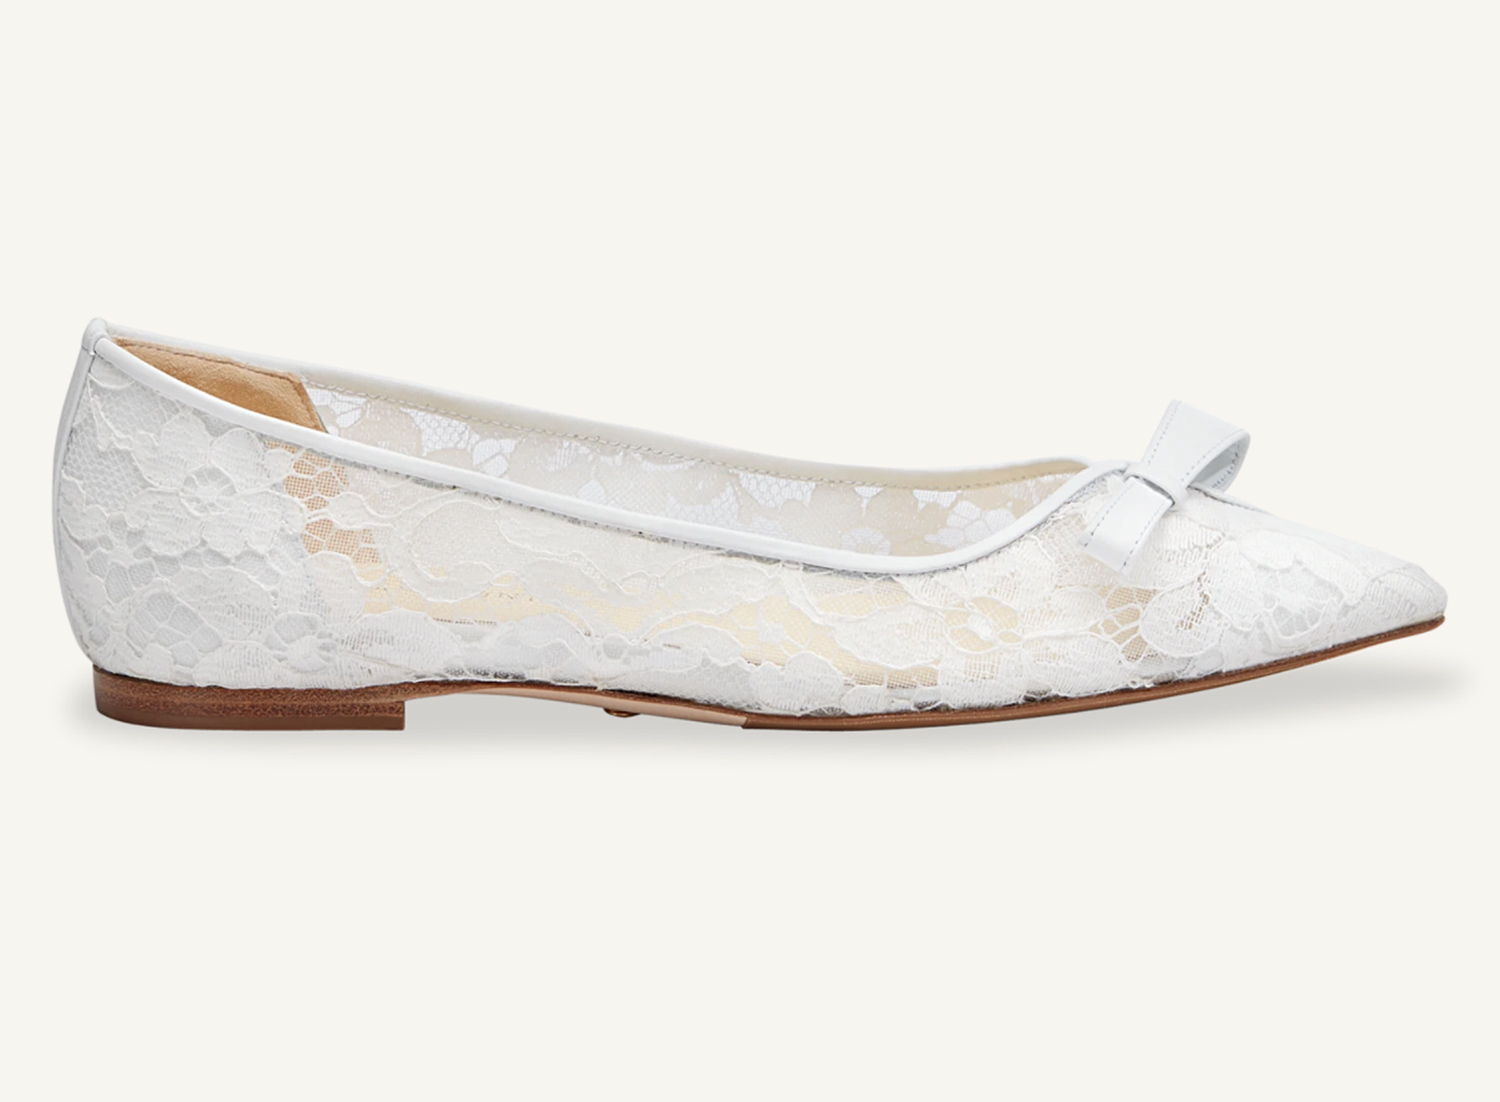 The New York-based shoe label launched an elegant wedding version of its best-selling (and Meghan Markle-approved!) Natalie Flat. Now available in white lace, the ultra-comfortable pointed style, which features extra padding and a wide toe box, is perfect for large celebrations, intimate ceremonies, courthouse weddings, bridal showers and more!                             Buy It! Natalie Flat in White Lace, $435; sarahflint.com